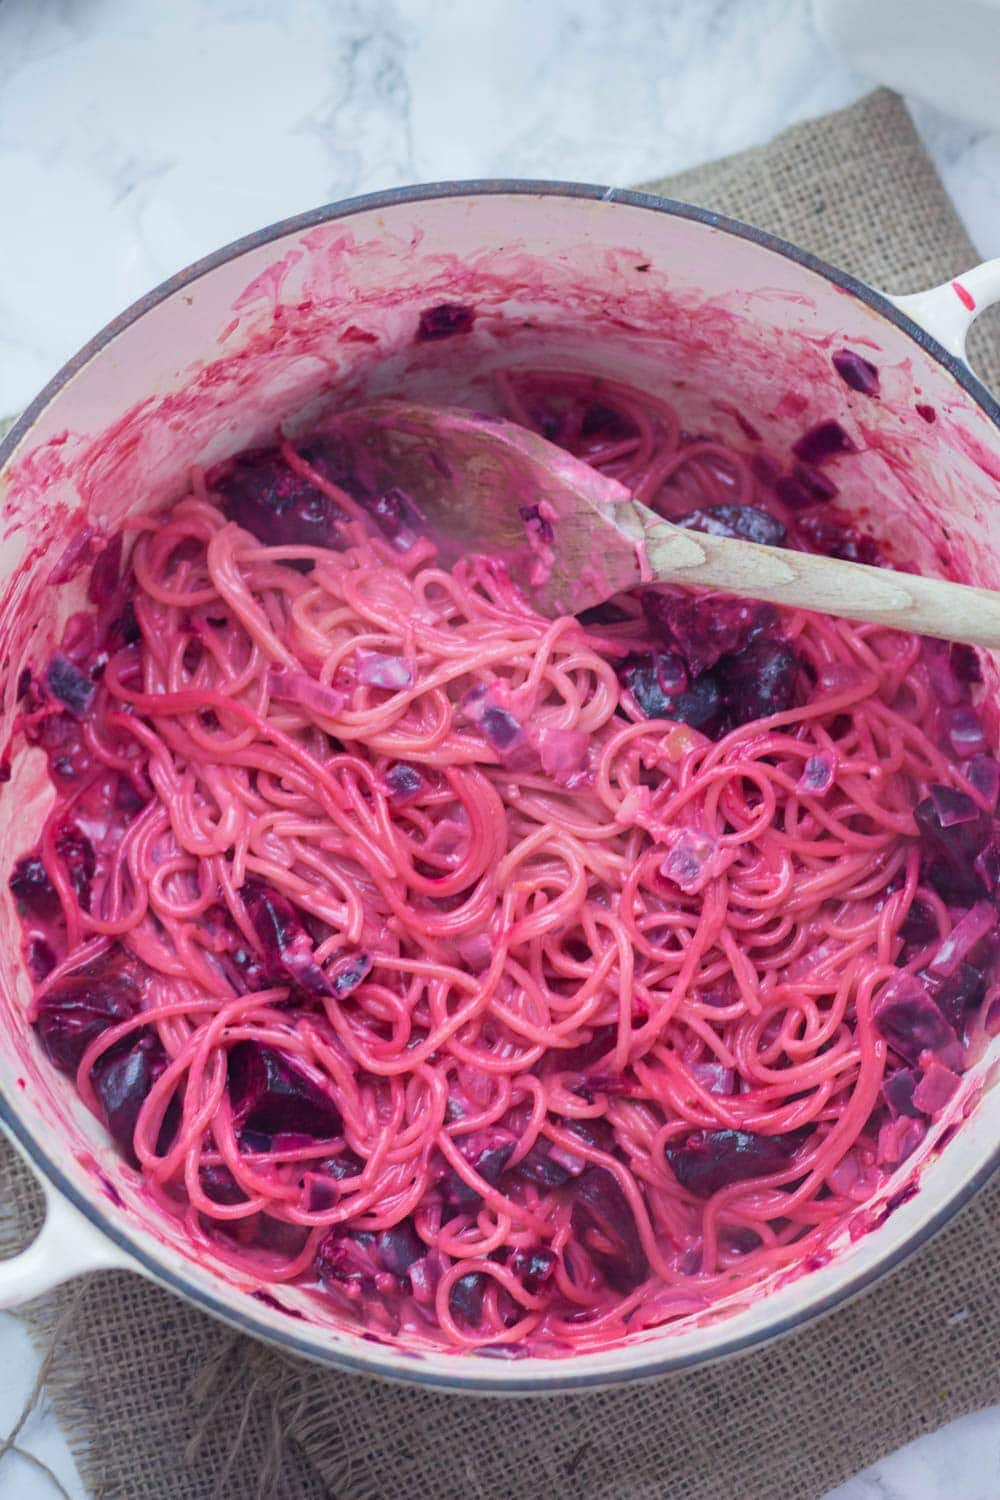 This roasted beetroot one-pot pasta is finished with a spoonful of goat's cheese. It's so easy and looks amazing, this dish is perfect comfort food! #beetroot #pasta #vegetarian #comfortfood